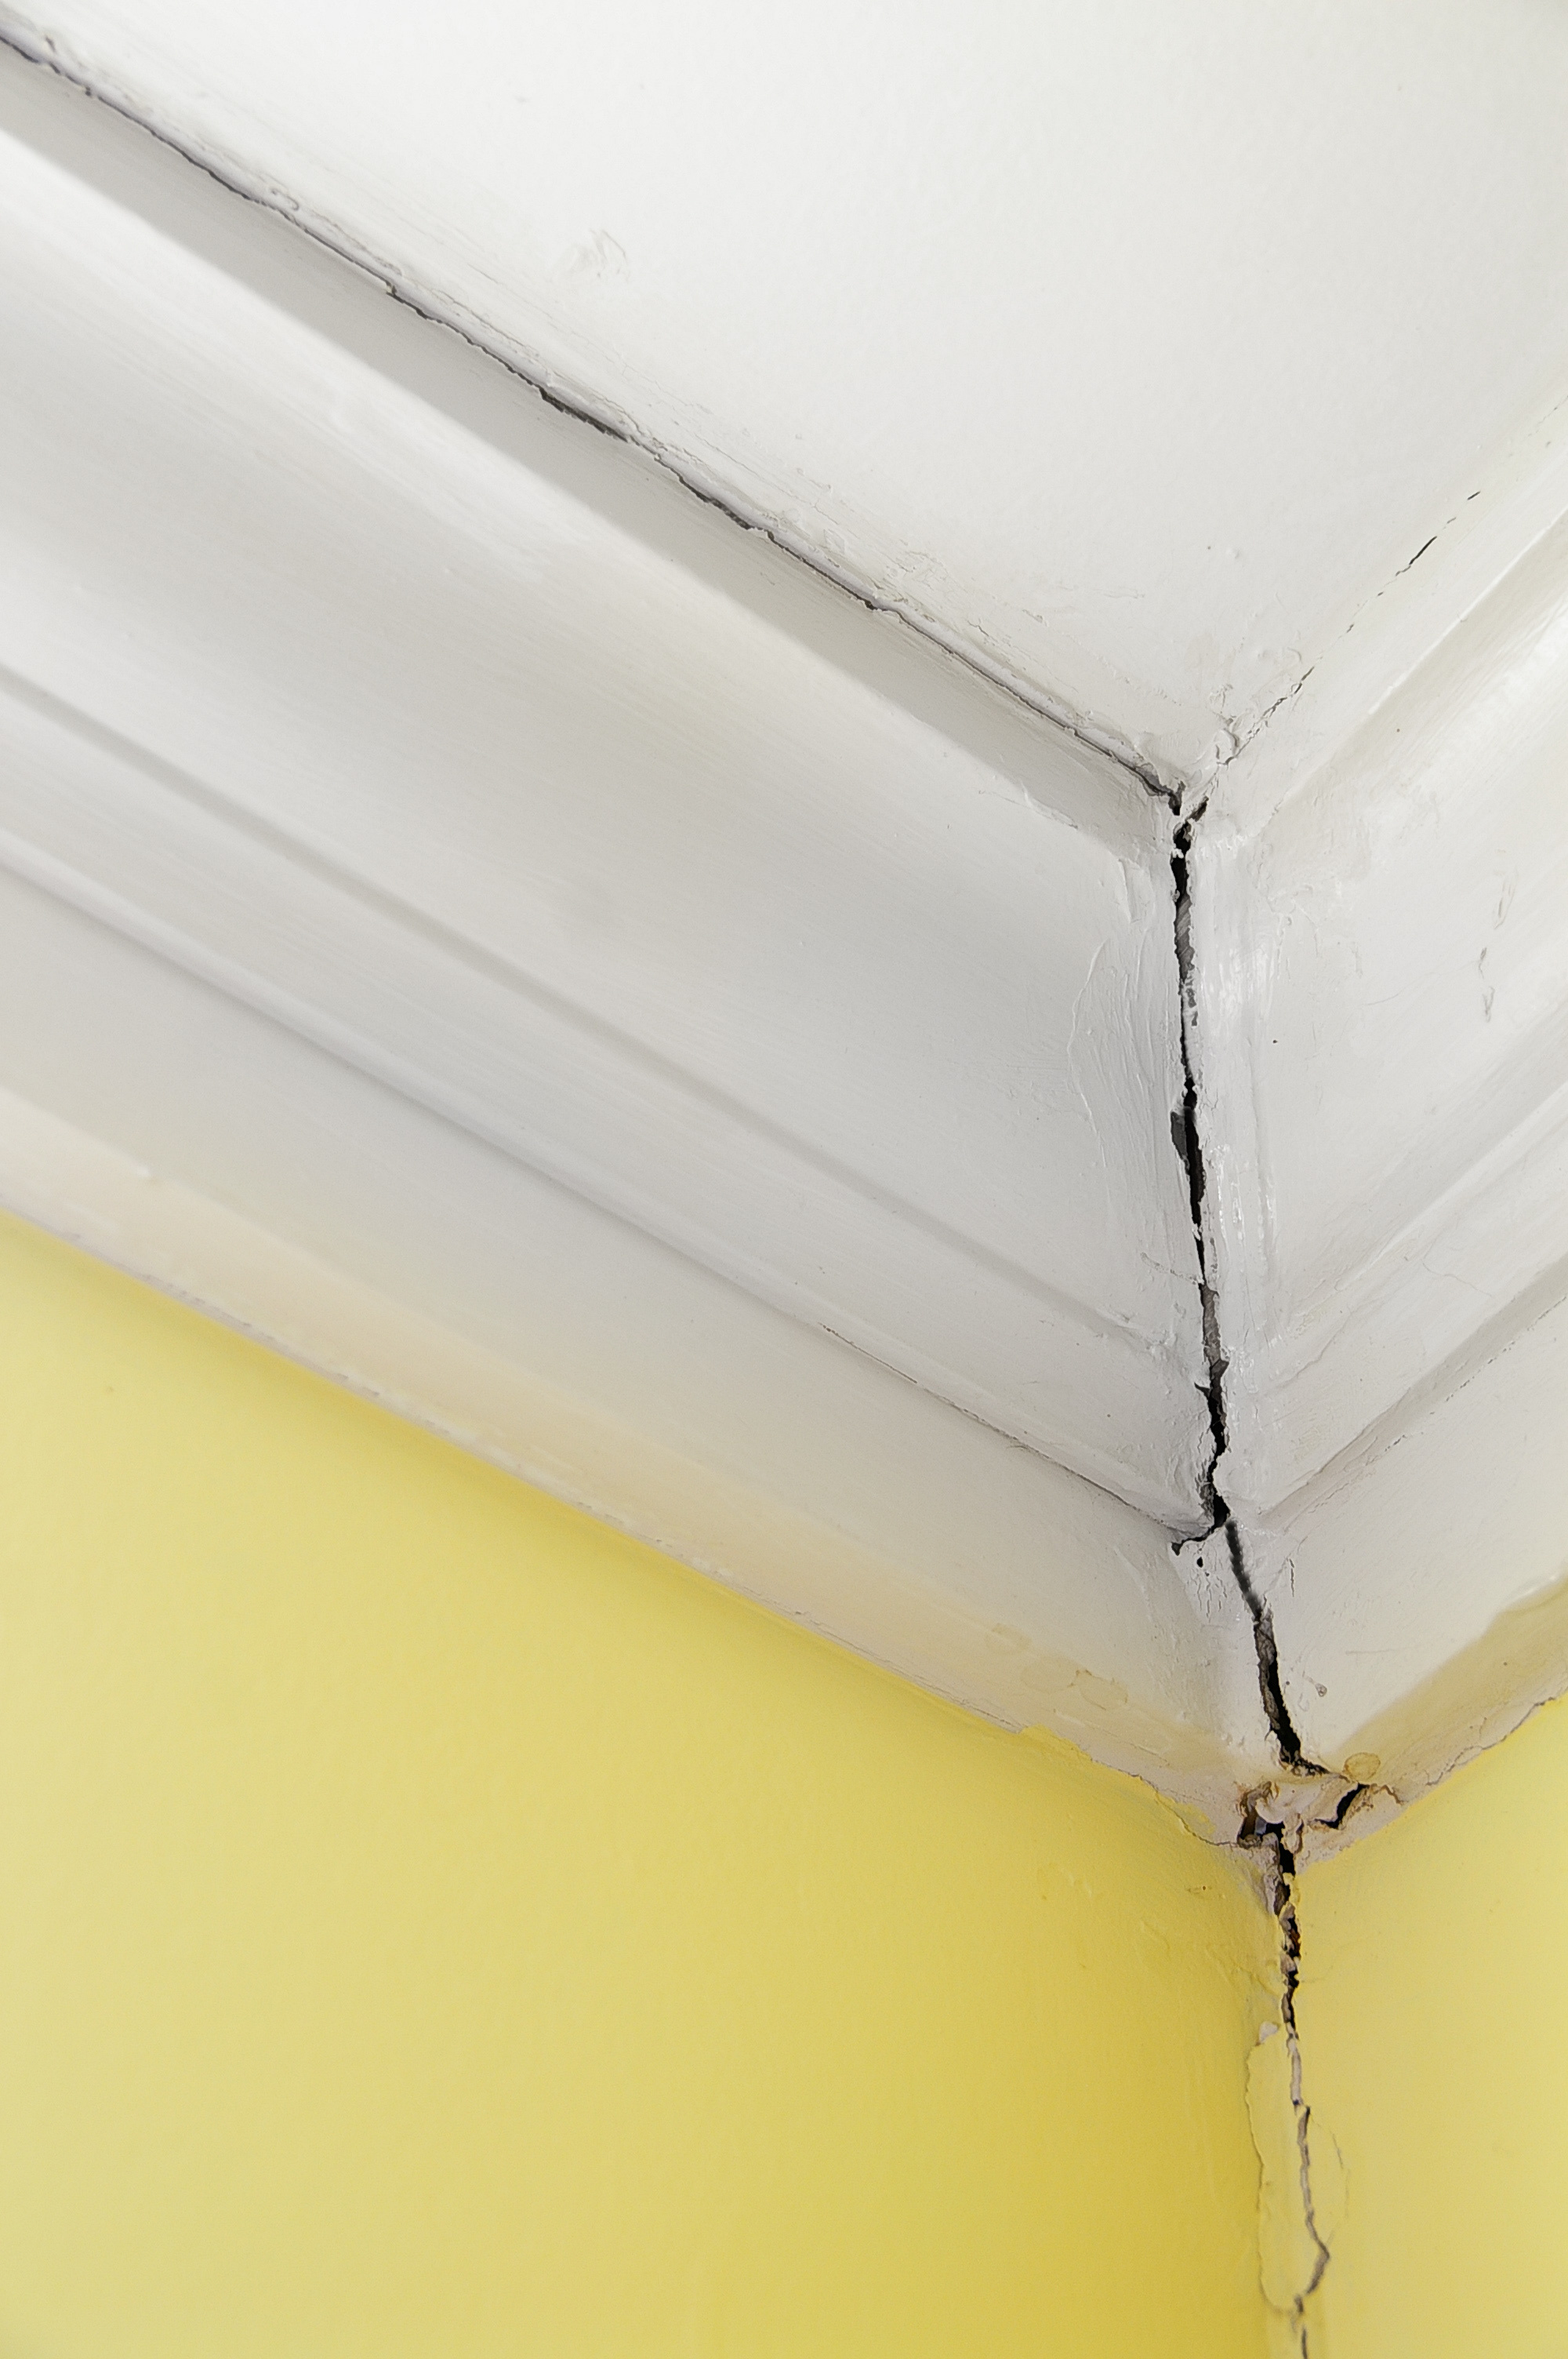 How to repair cracks in walls - How To Fix A Hairline Crack In A Textured Sheetrock Repairing A Textured Ceiling Crack How To Fix A Hairline Crack In A Textured Sheetrock Repairing A